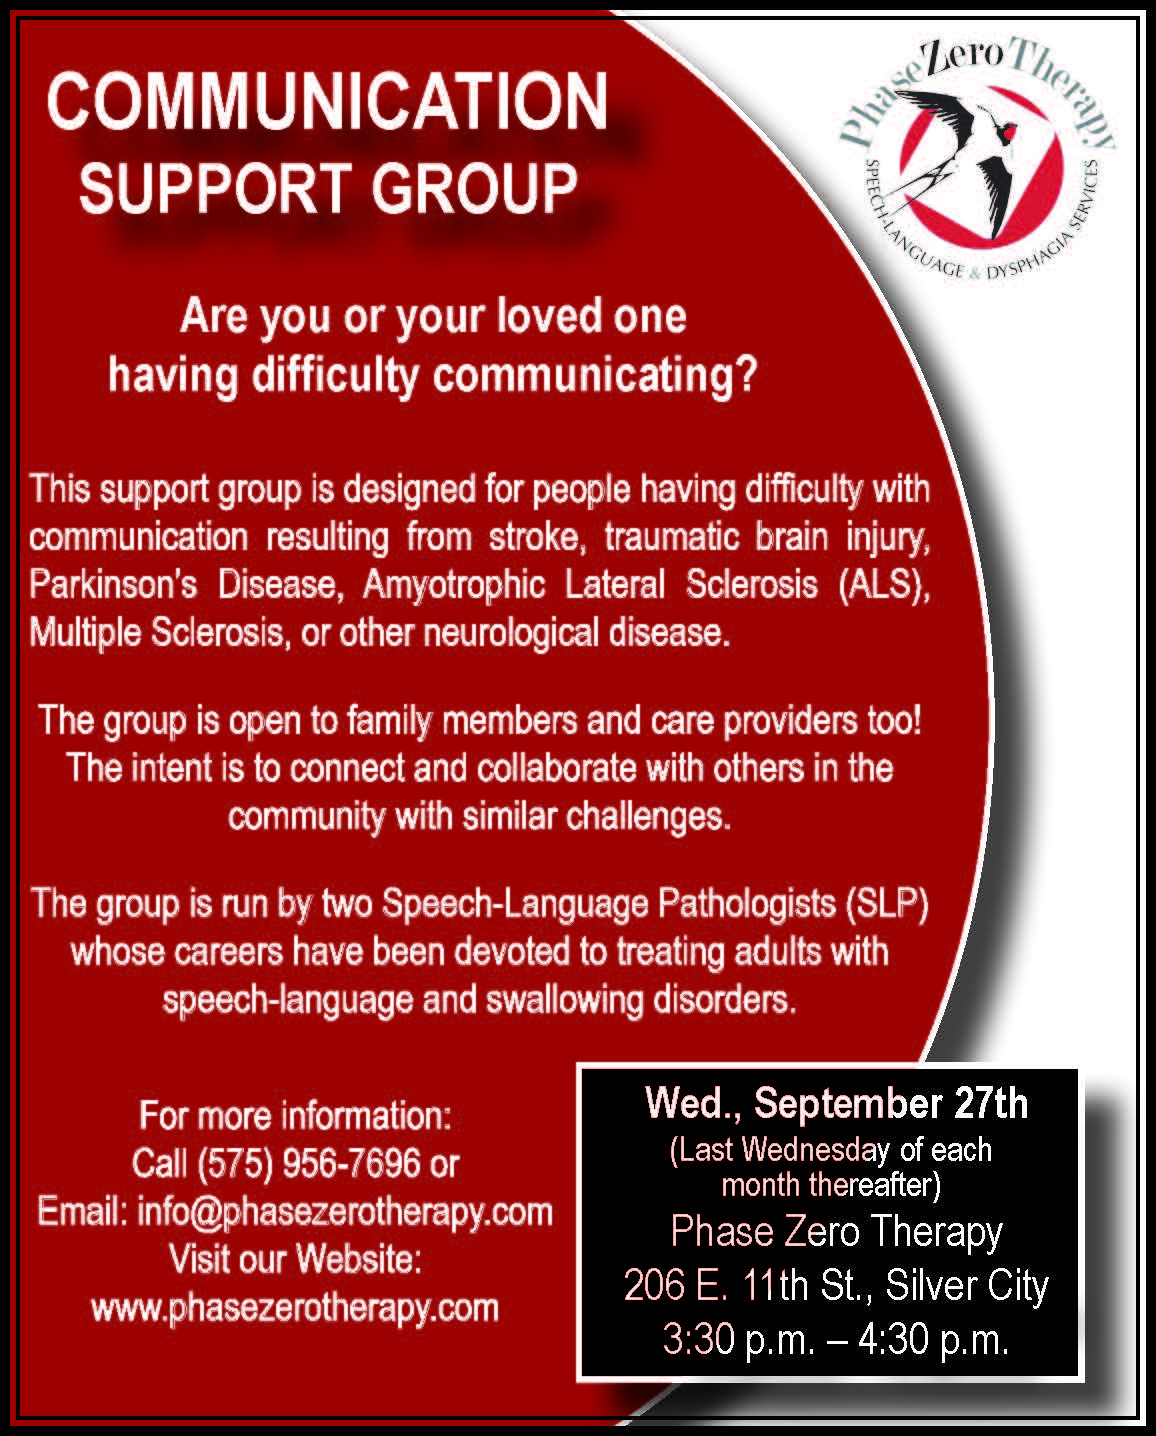 Communication Support Group